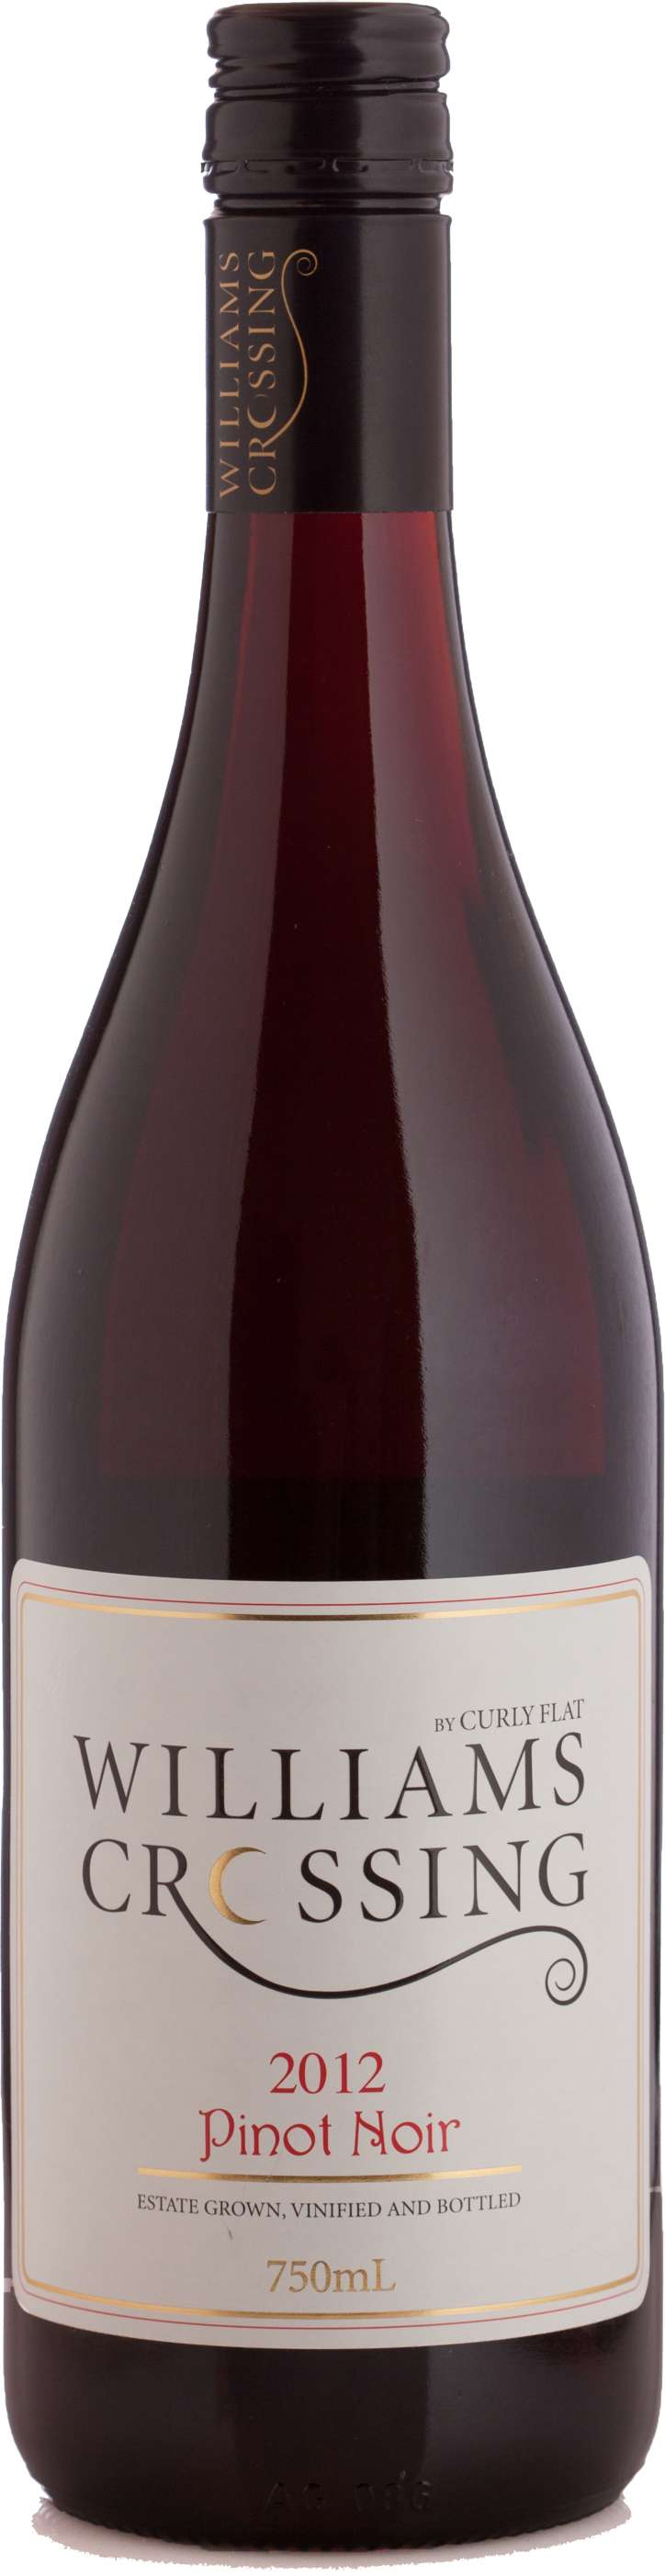 Curly Flat Williams Crossing Pinot Noir 2016 - annandalecellars.